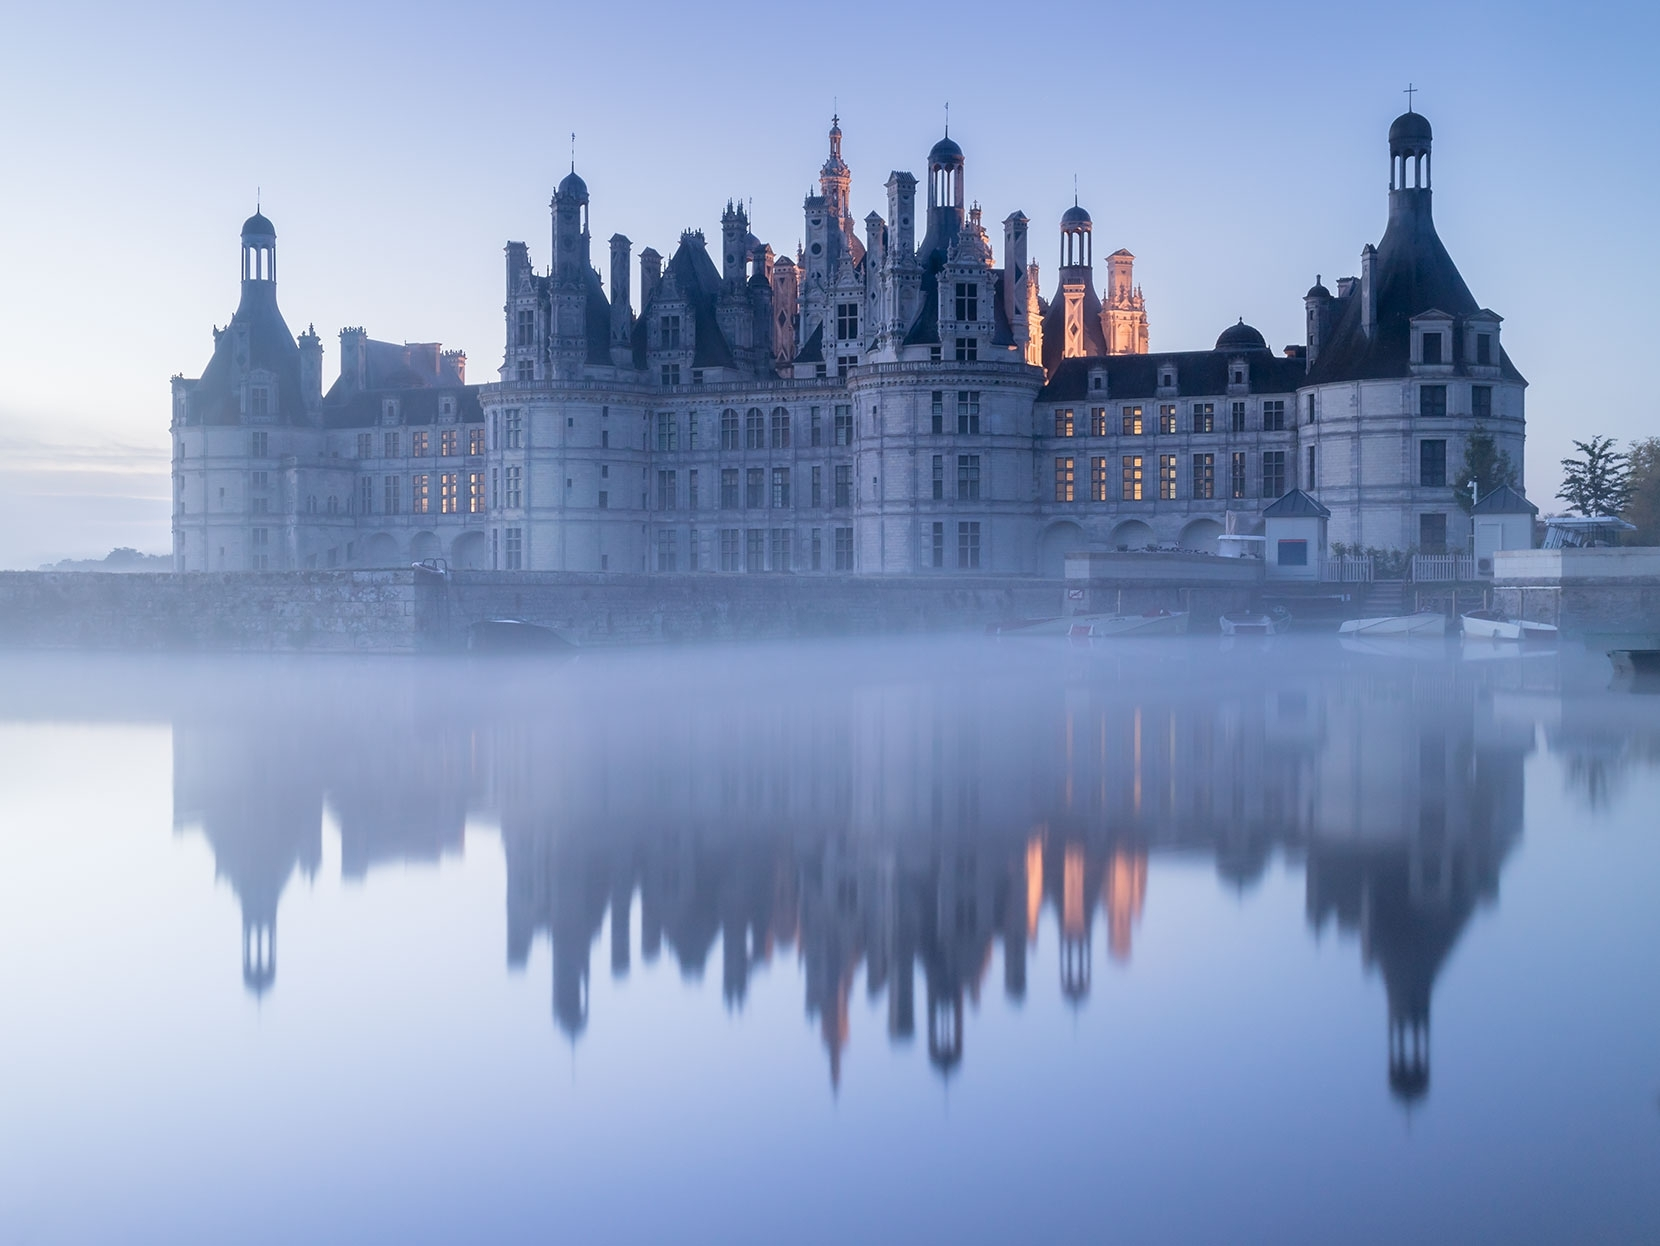 Chambord - suffering from flood damage after spring time flooding, I hope the chateau is restored.